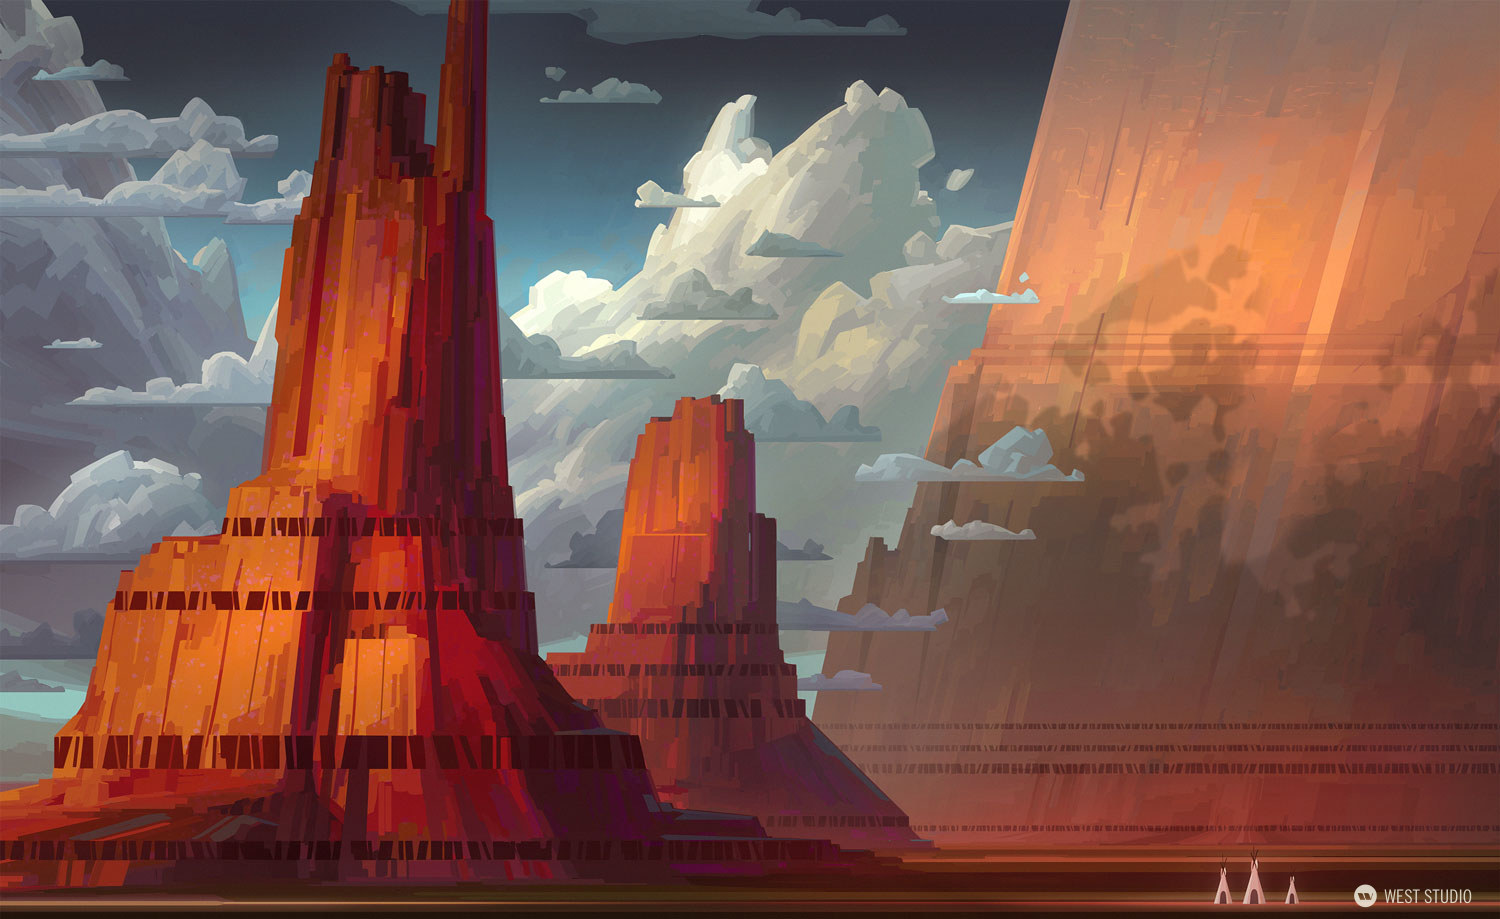 Animation, scale, stylized, epic, monument valley, rock, cliffs